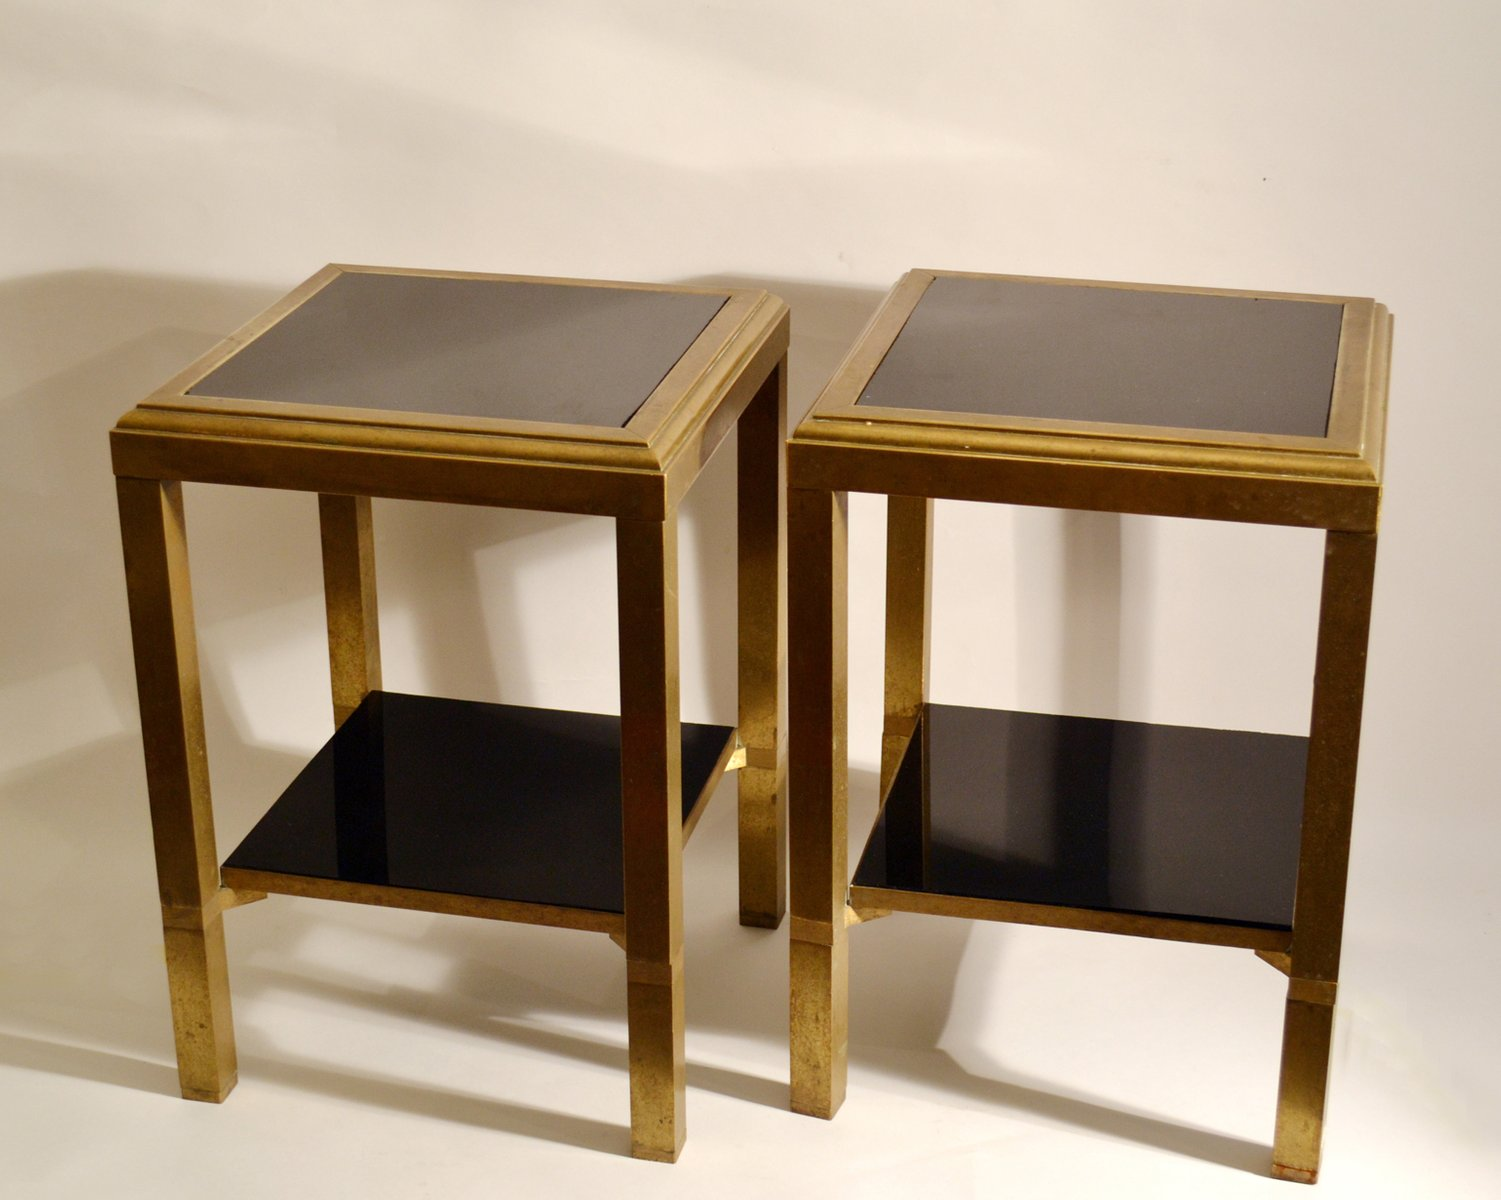 Black Glass Side Table: Brass Square Side Tables With 2-Level Black Glass Shelves